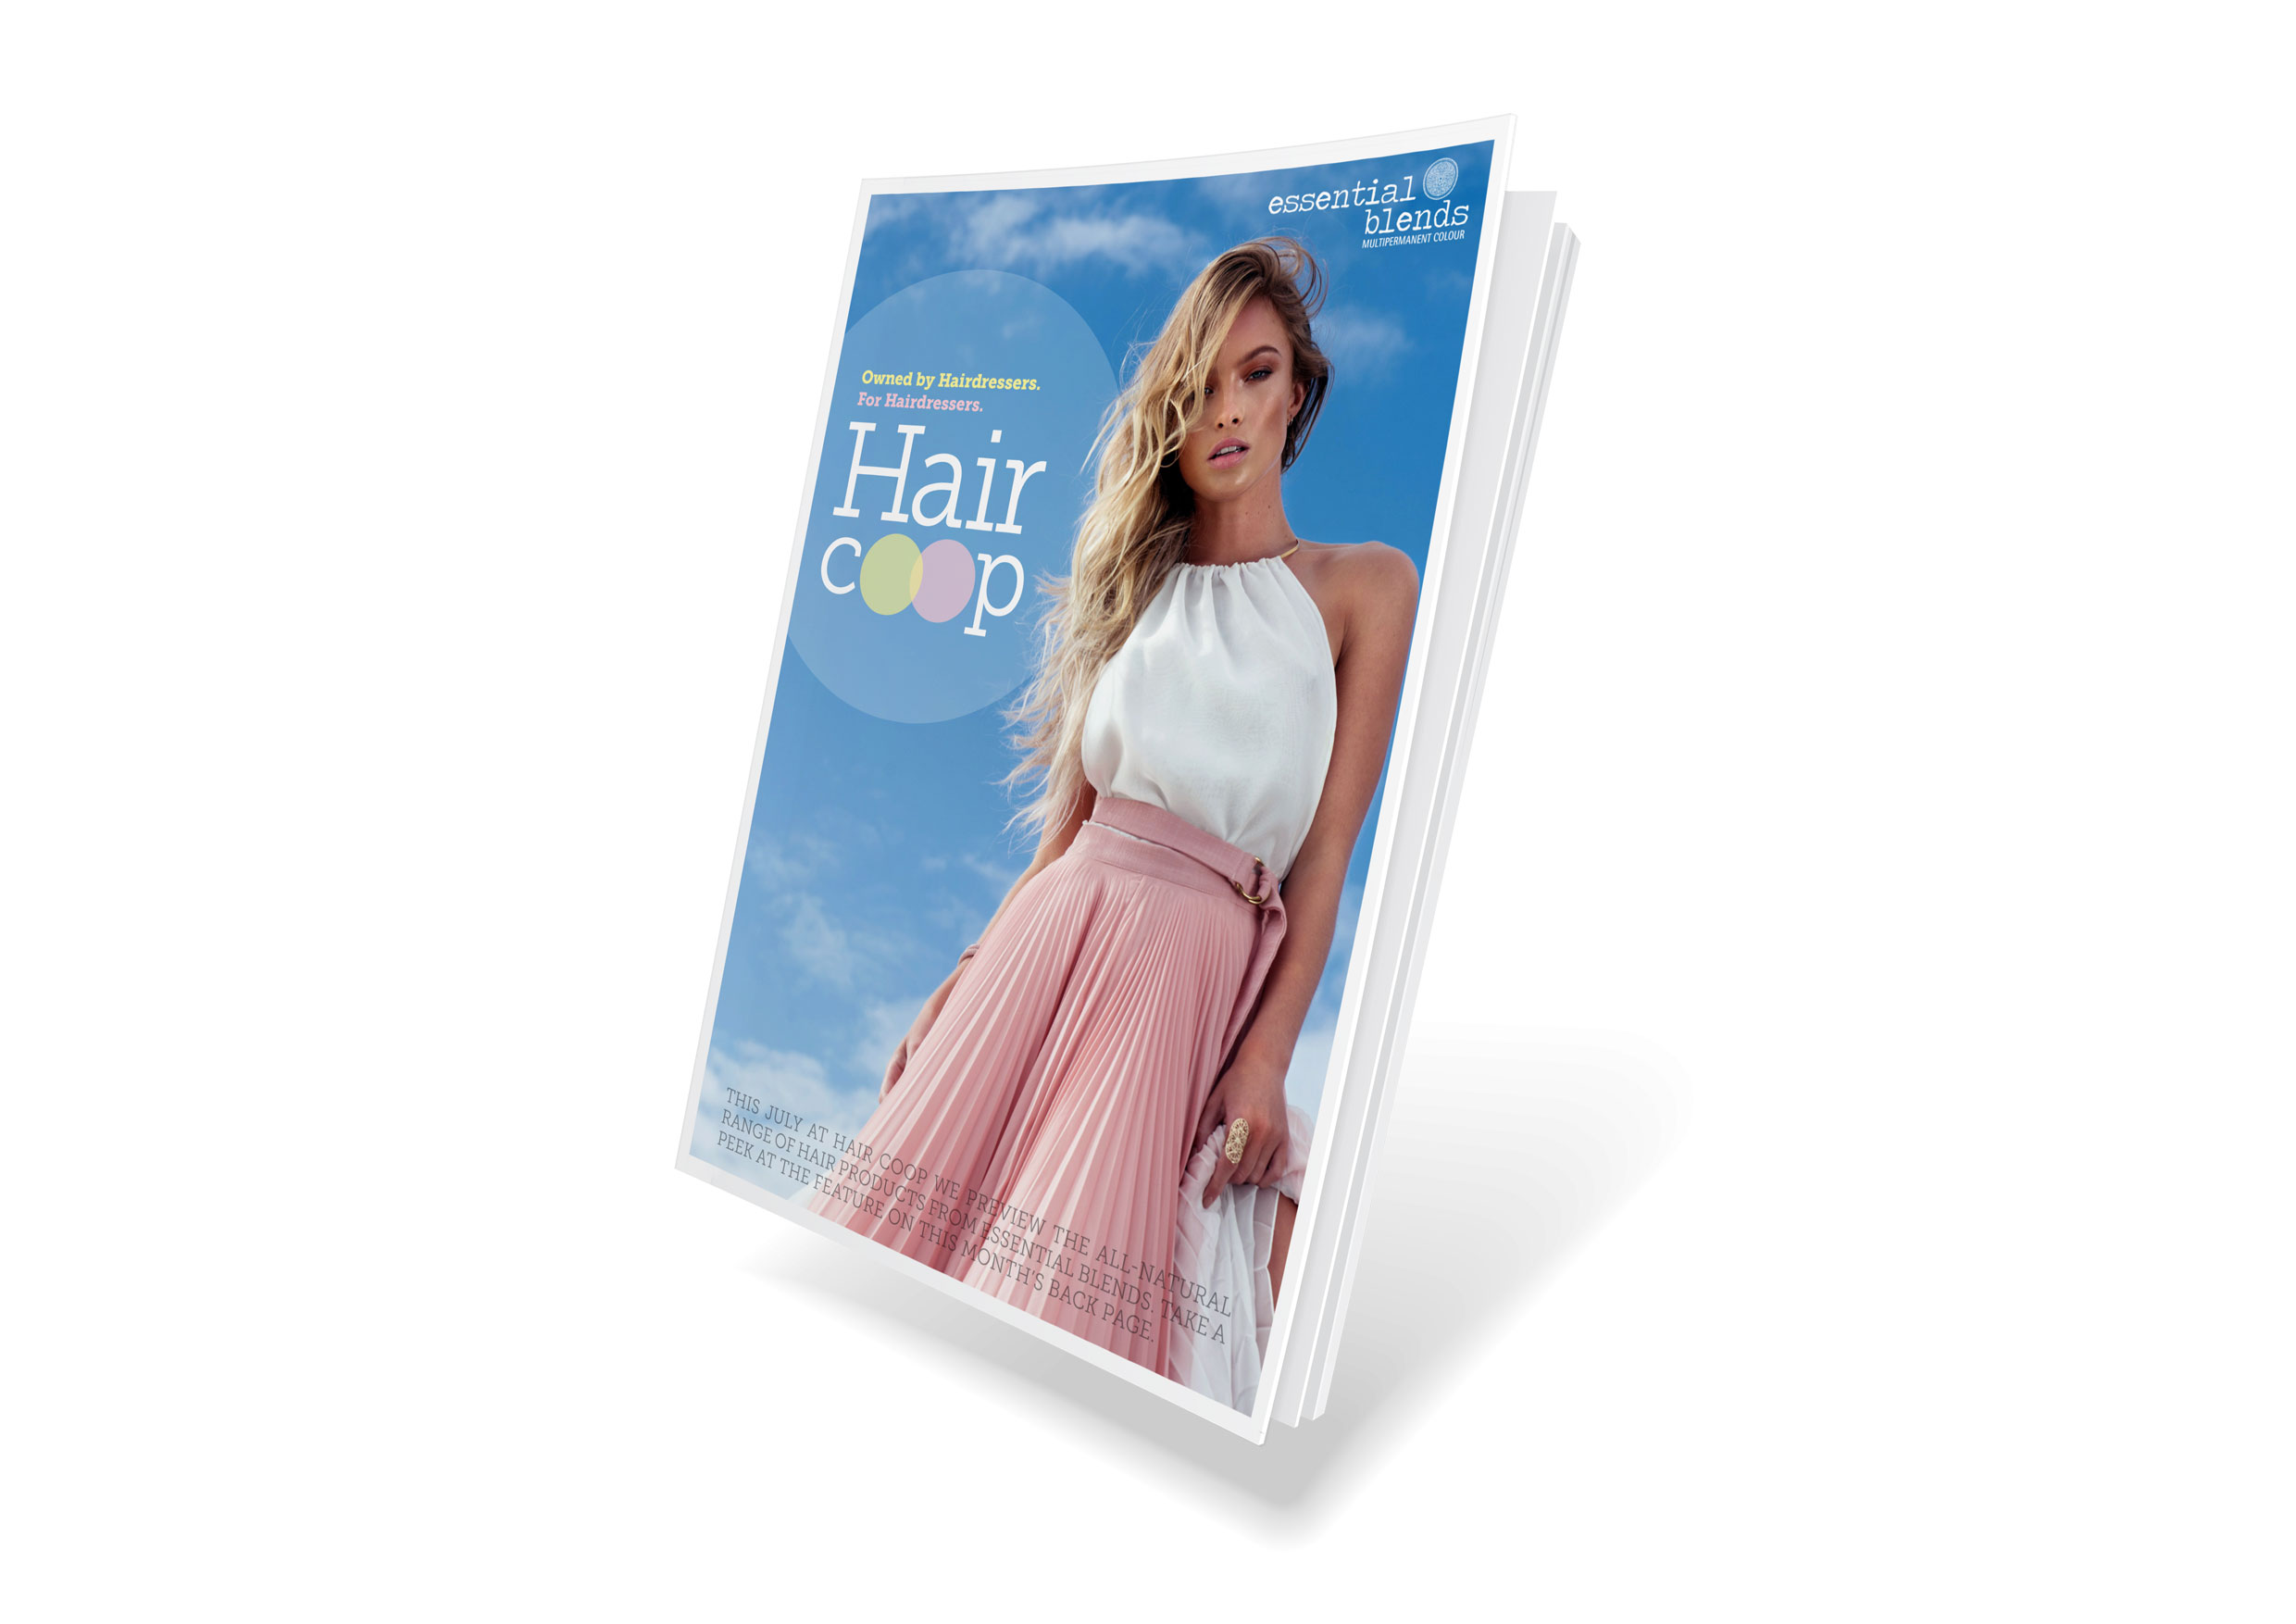 HAIR-COOP-COVER_2